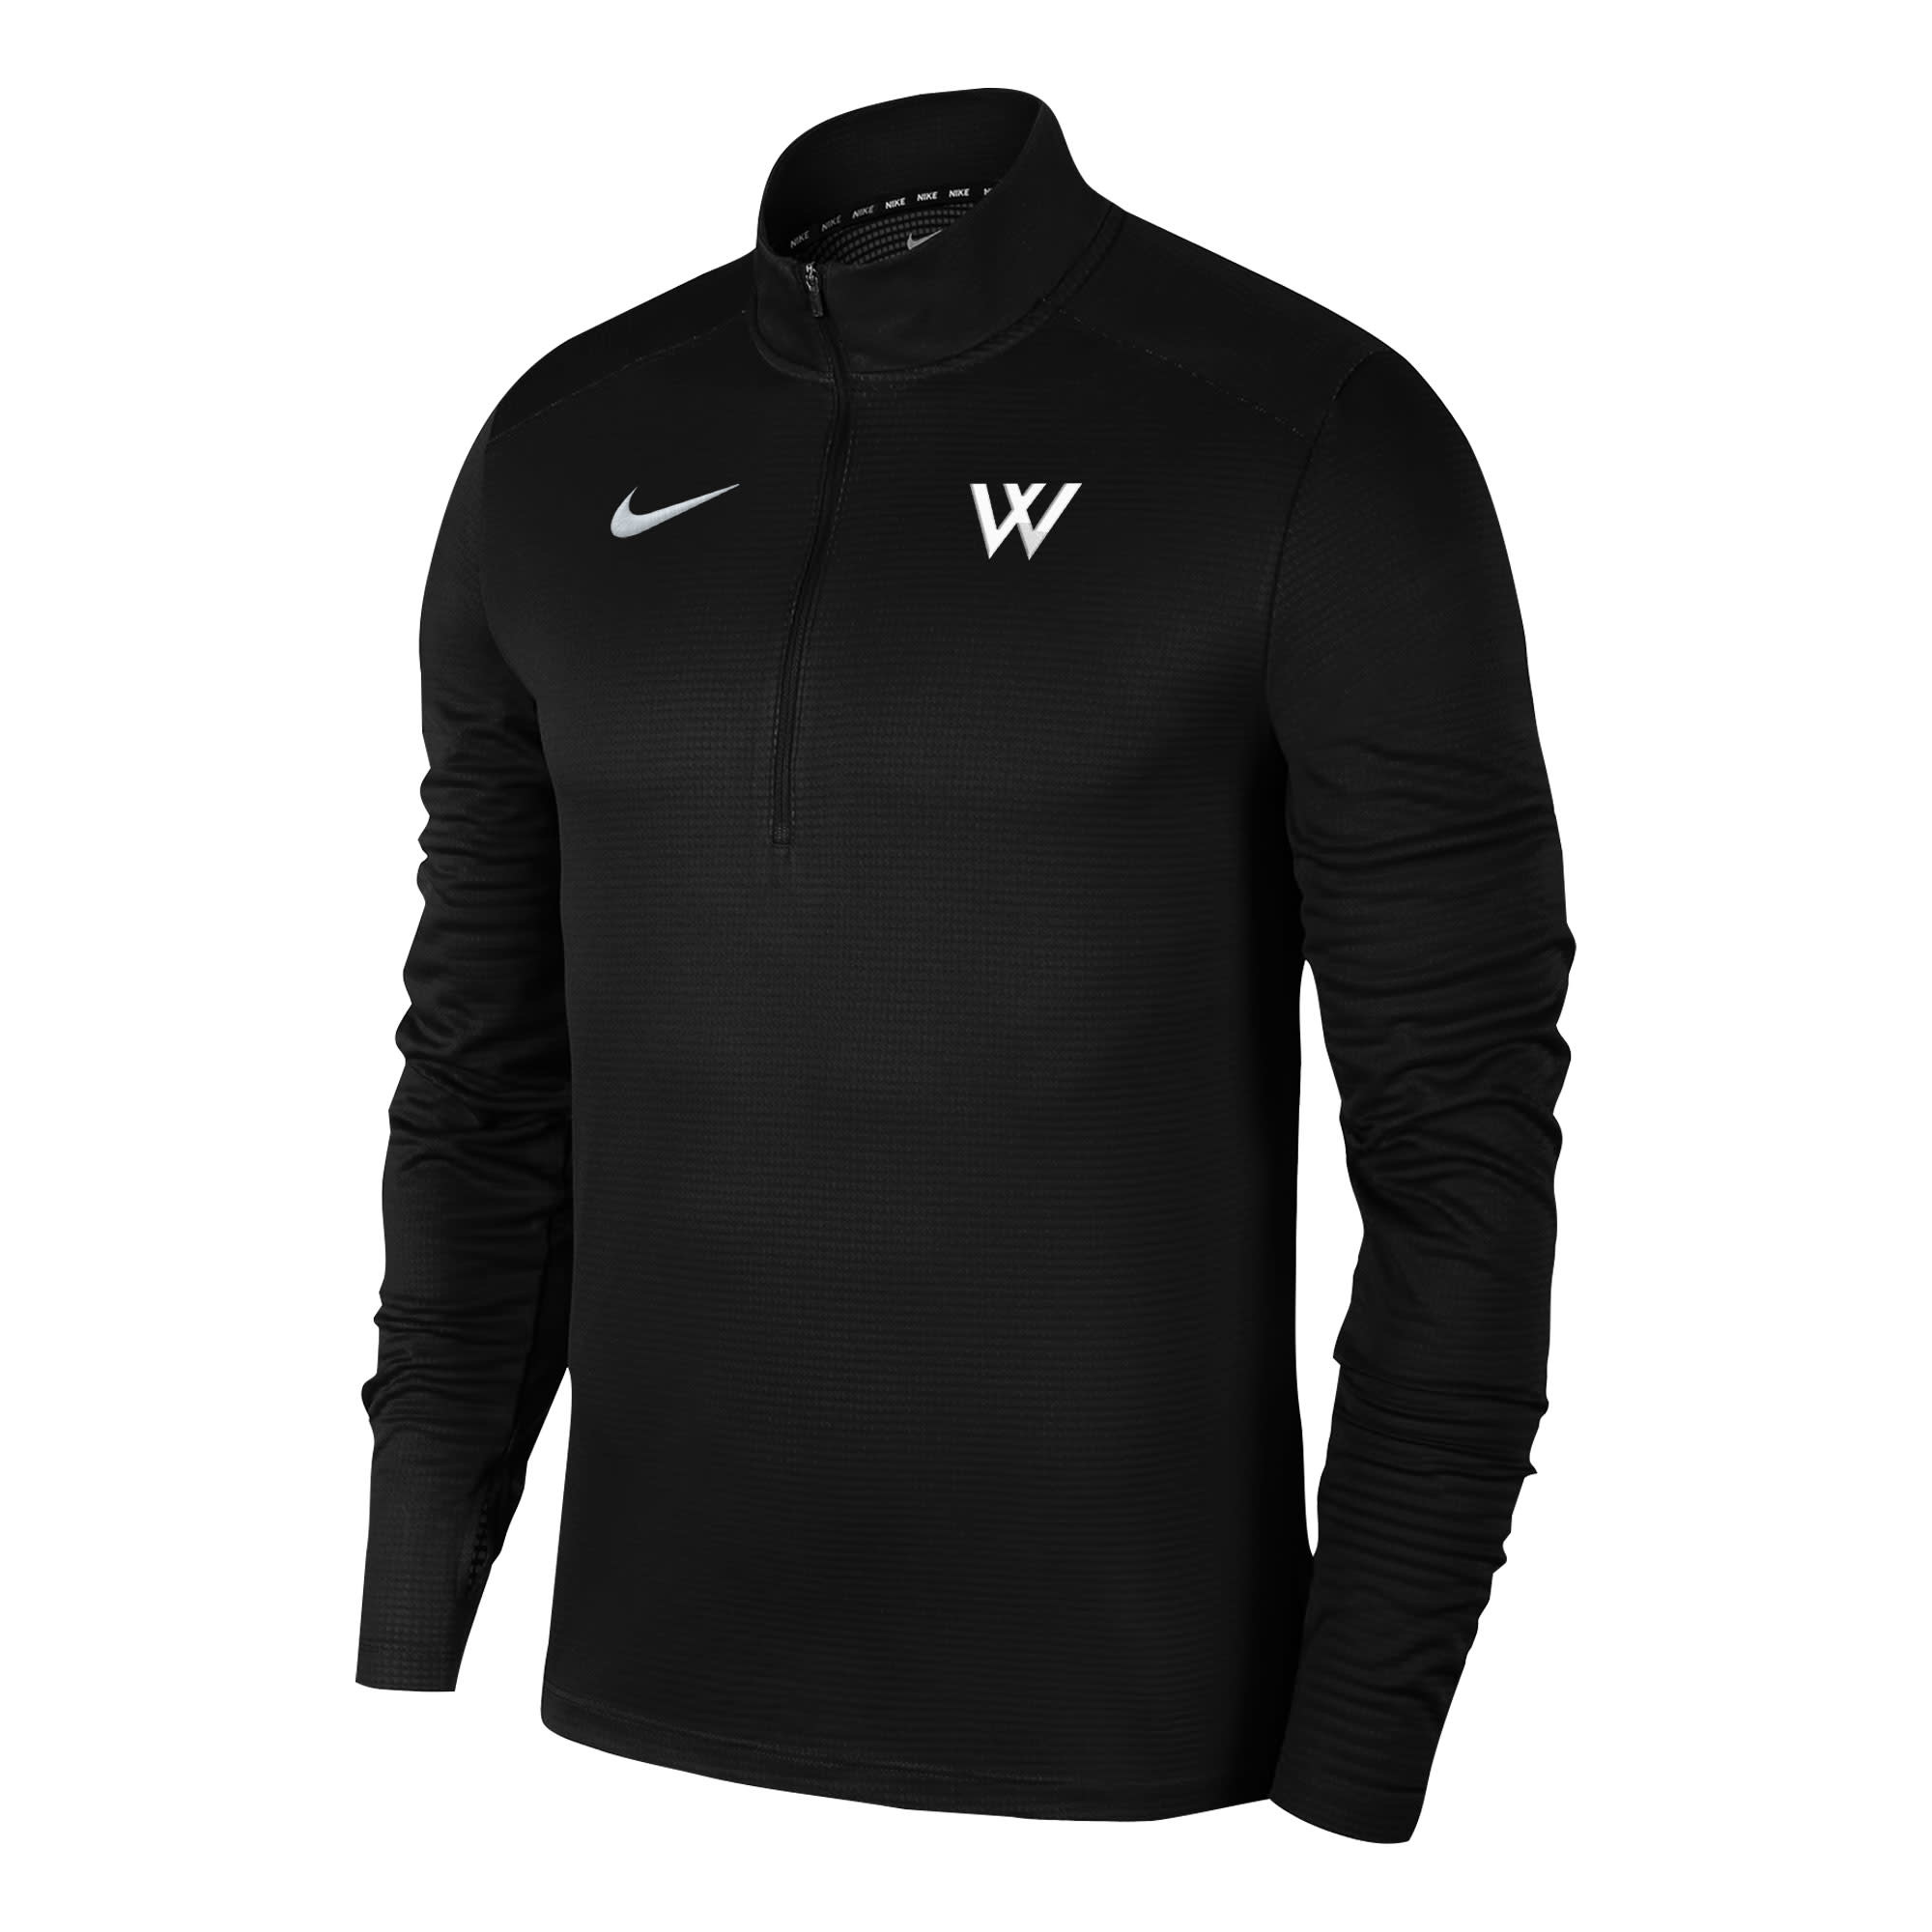 Nike Pullover: Nike Pacer 1/4 Zip Green